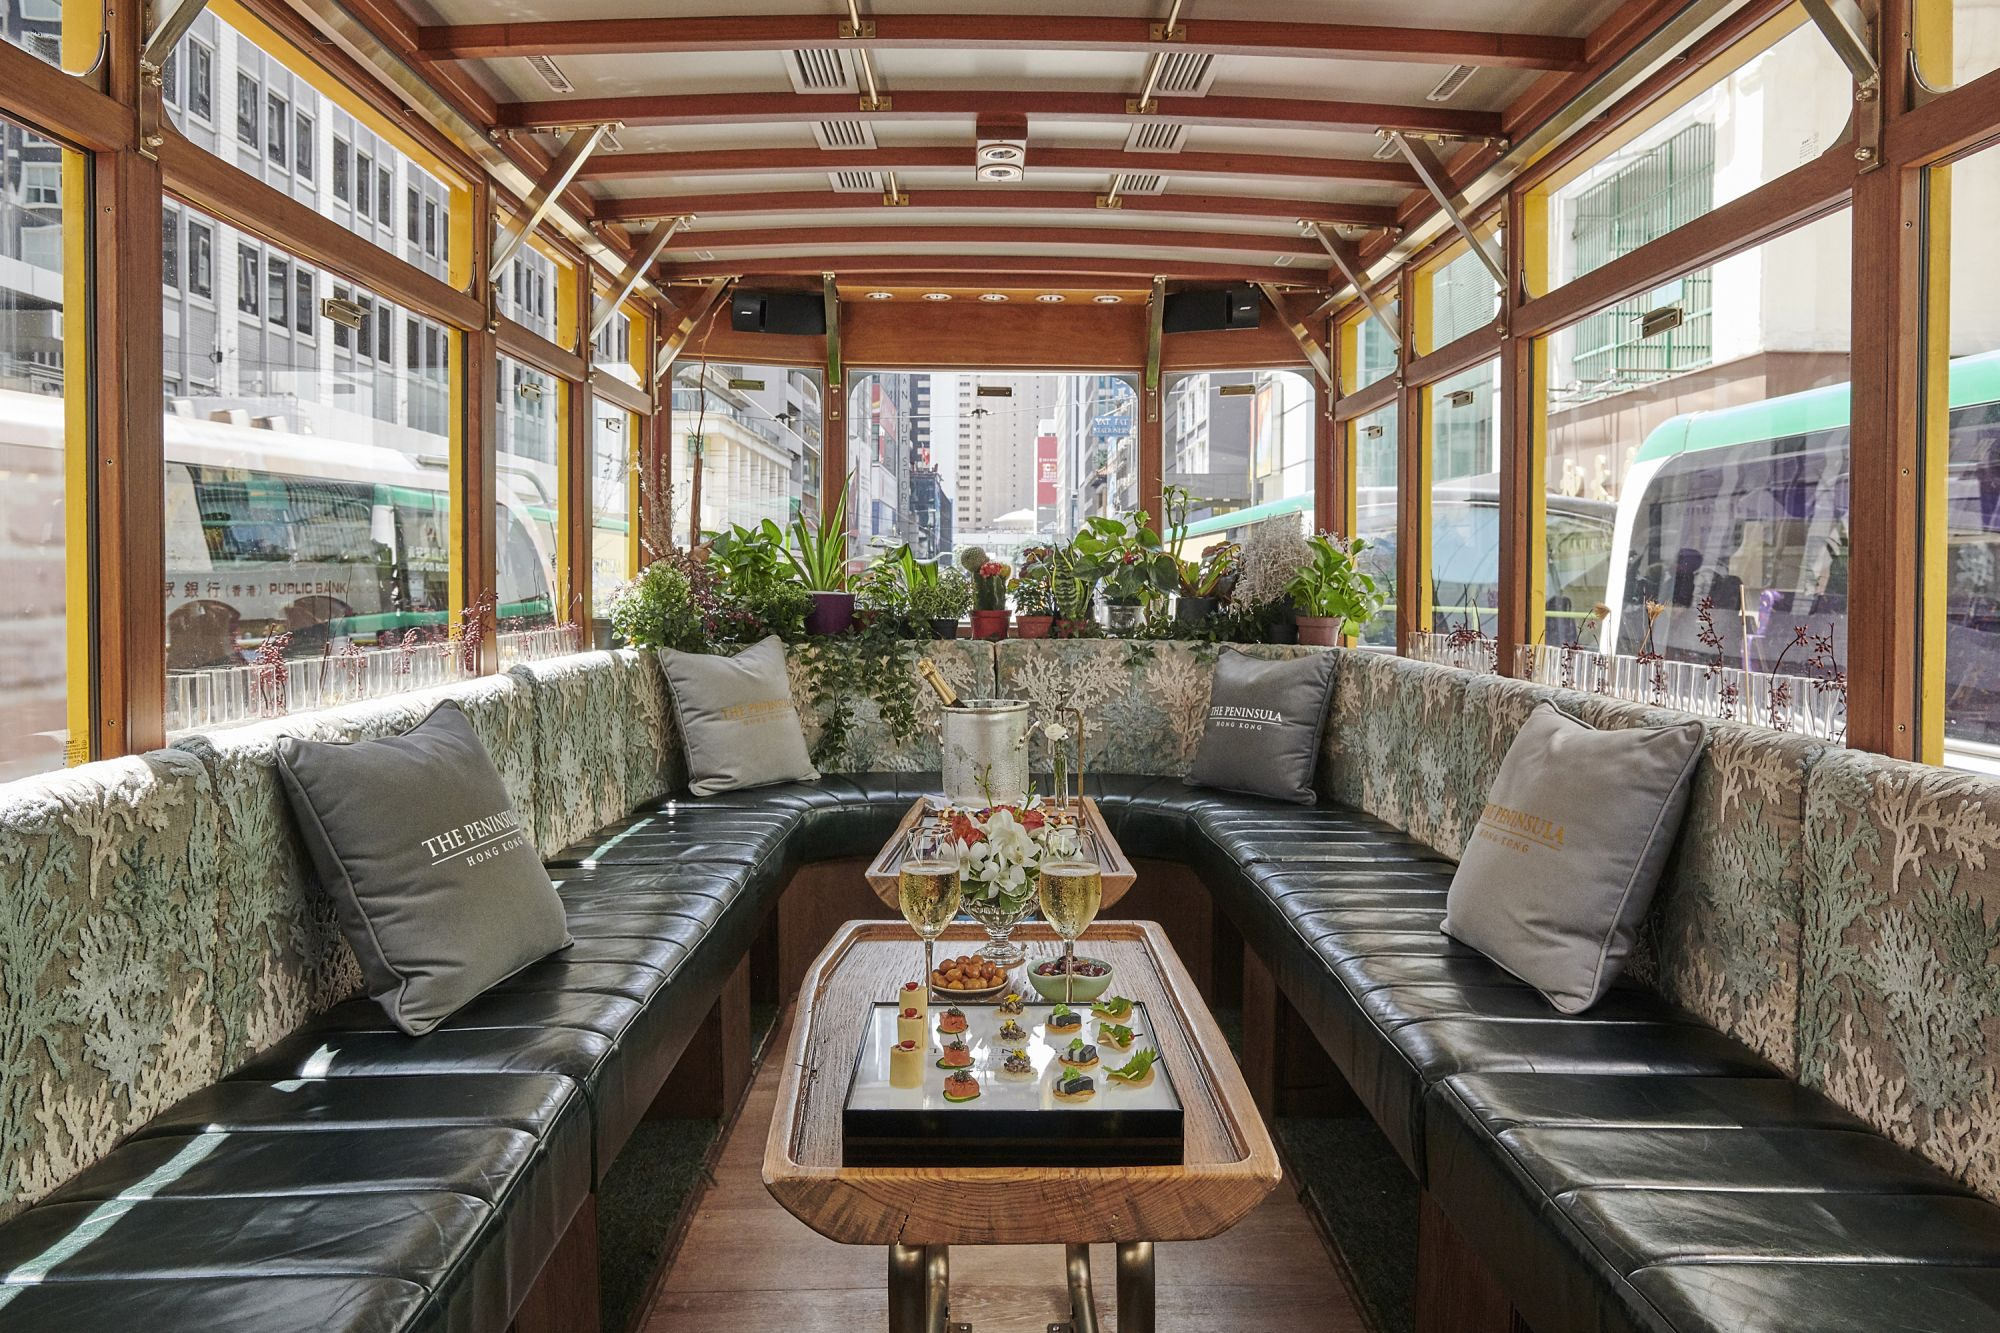 This Super Luxurious Hong Kong Tram Has A Bar, A Balcony And More